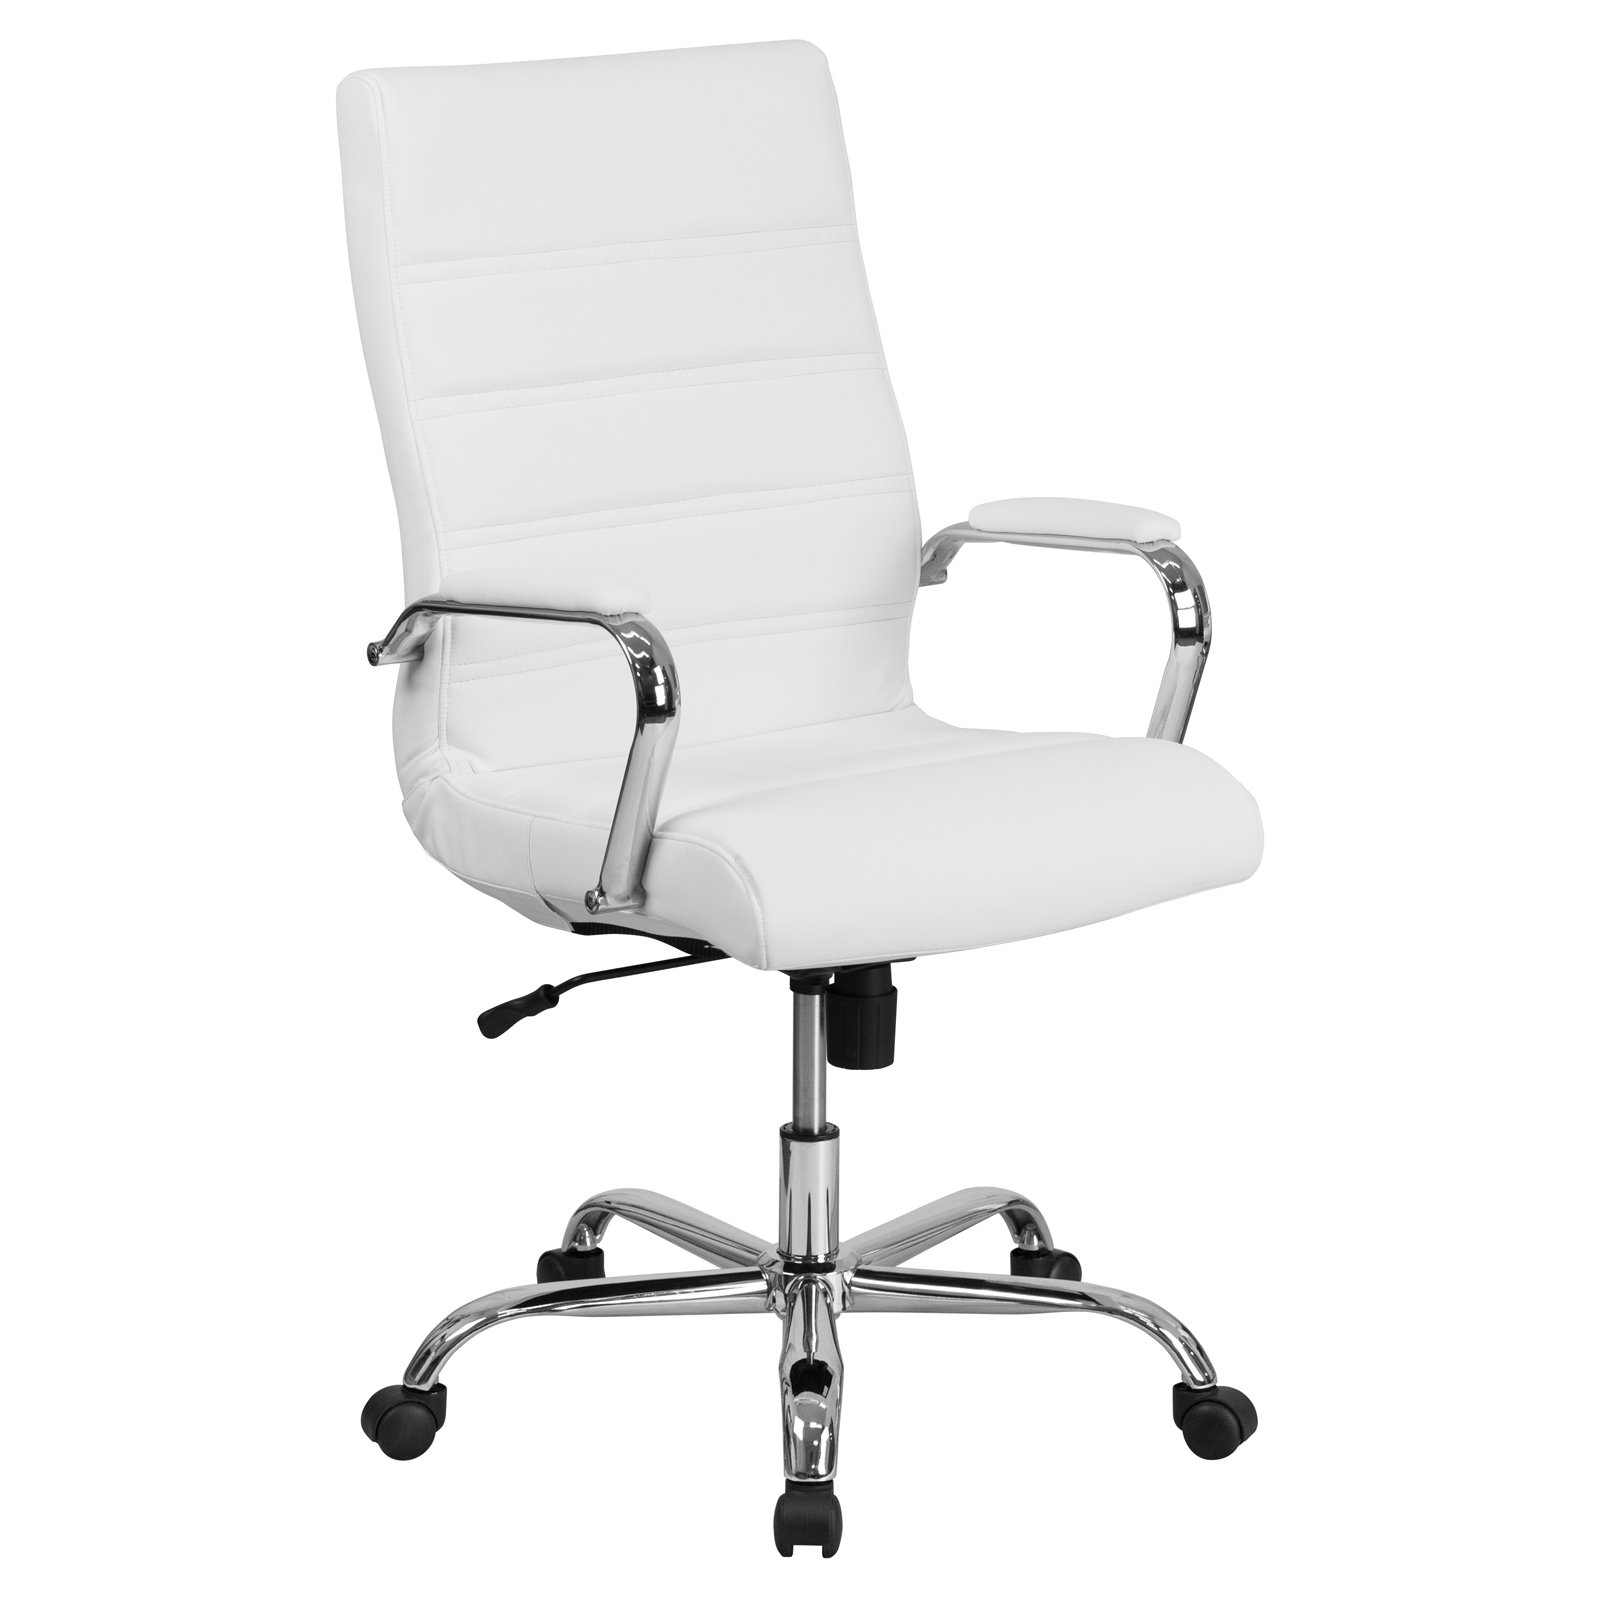 black leather office chair high back baxton studio chairs flash furniture white executive swivel with chrome arms walmart com